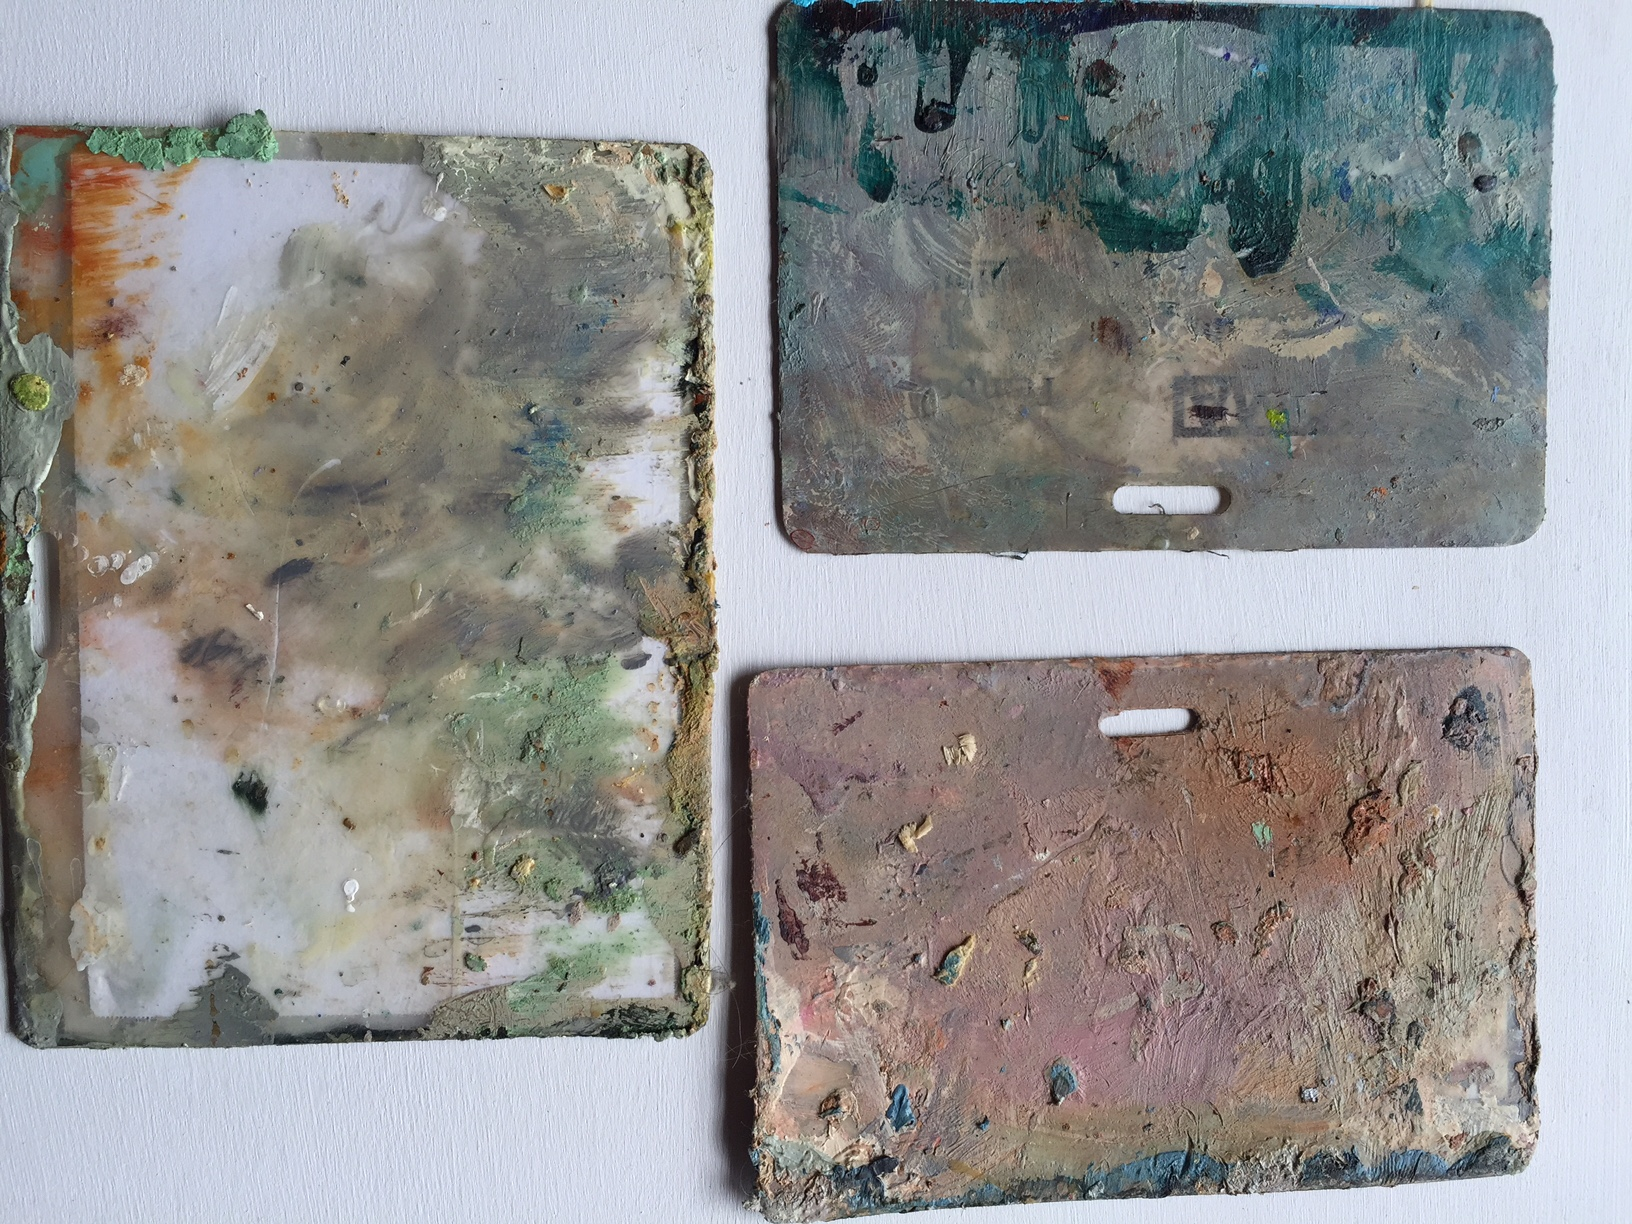 Some of my tools, such as the scraping tools, become inspiration for future concepts, as does my floor palette.